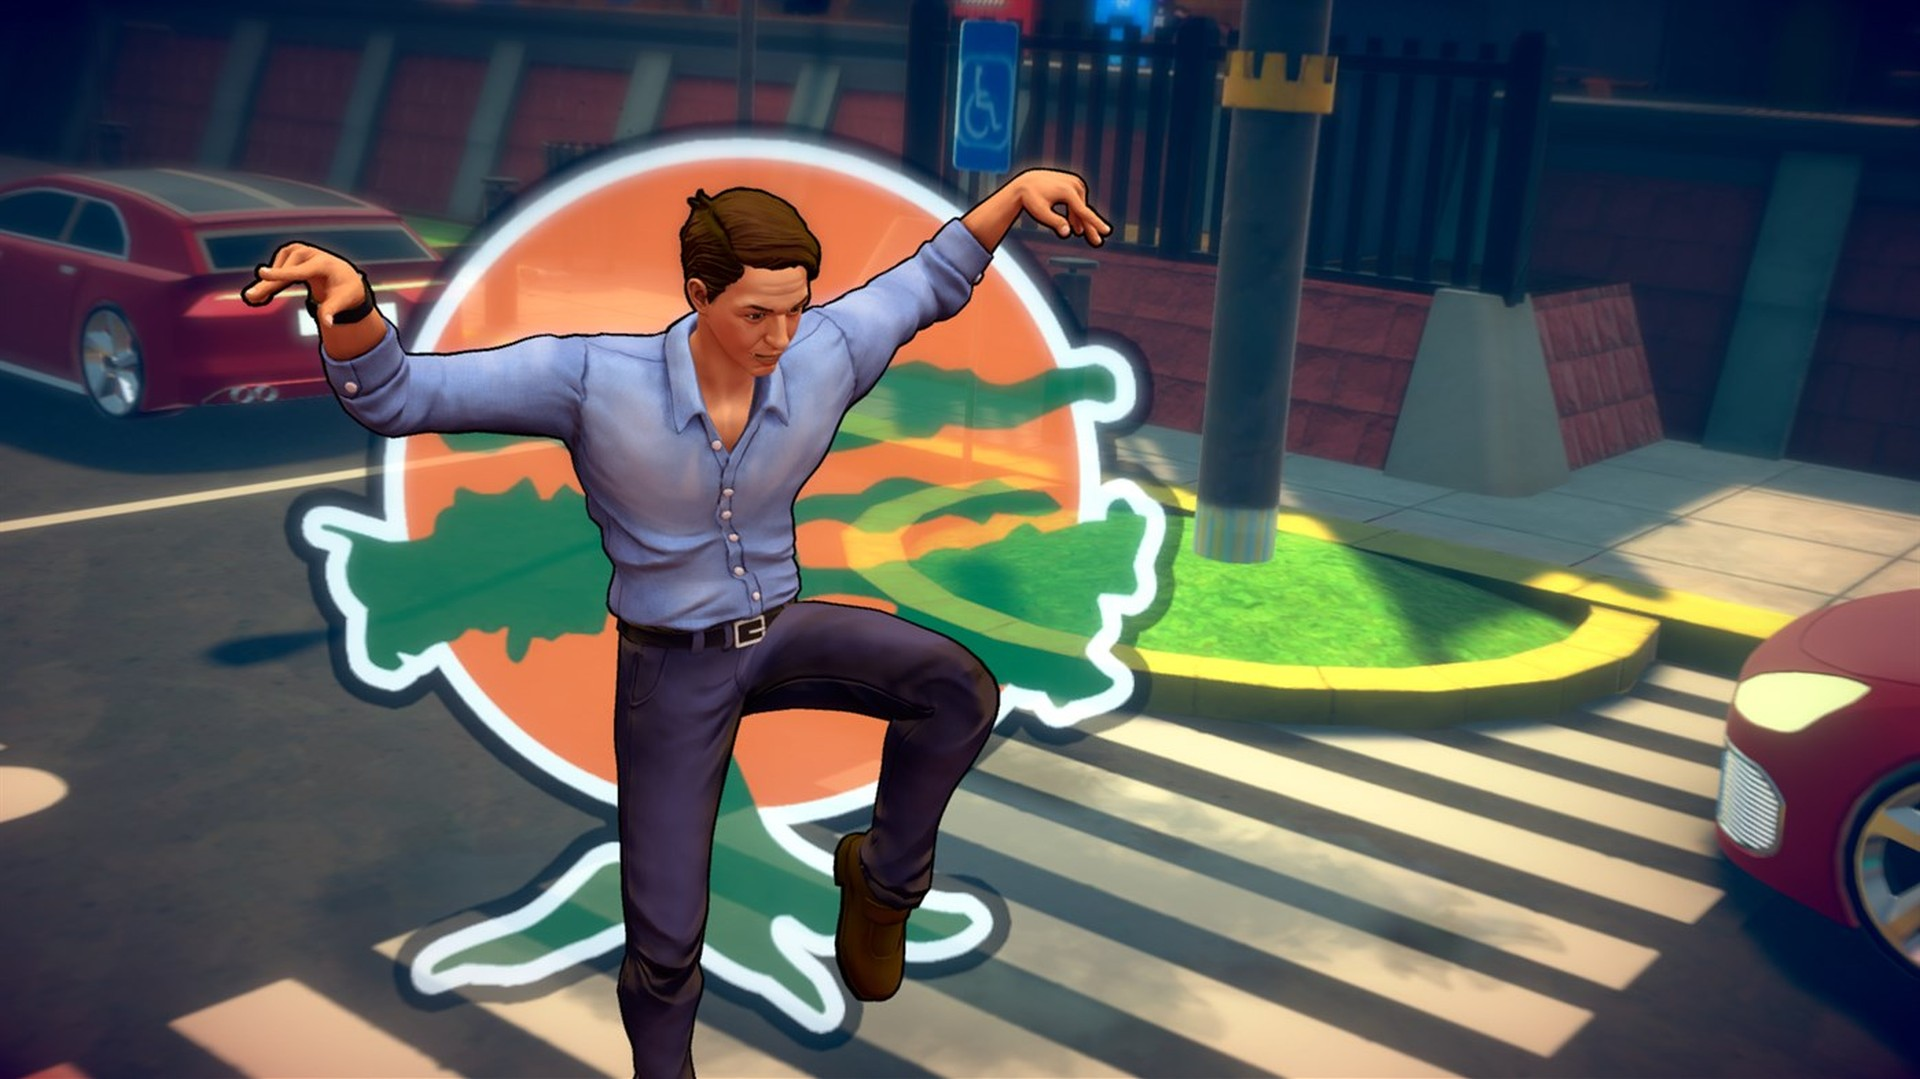 Cobra Kai Takes a Modern Eye to the Classic Beat 'em Up Genre